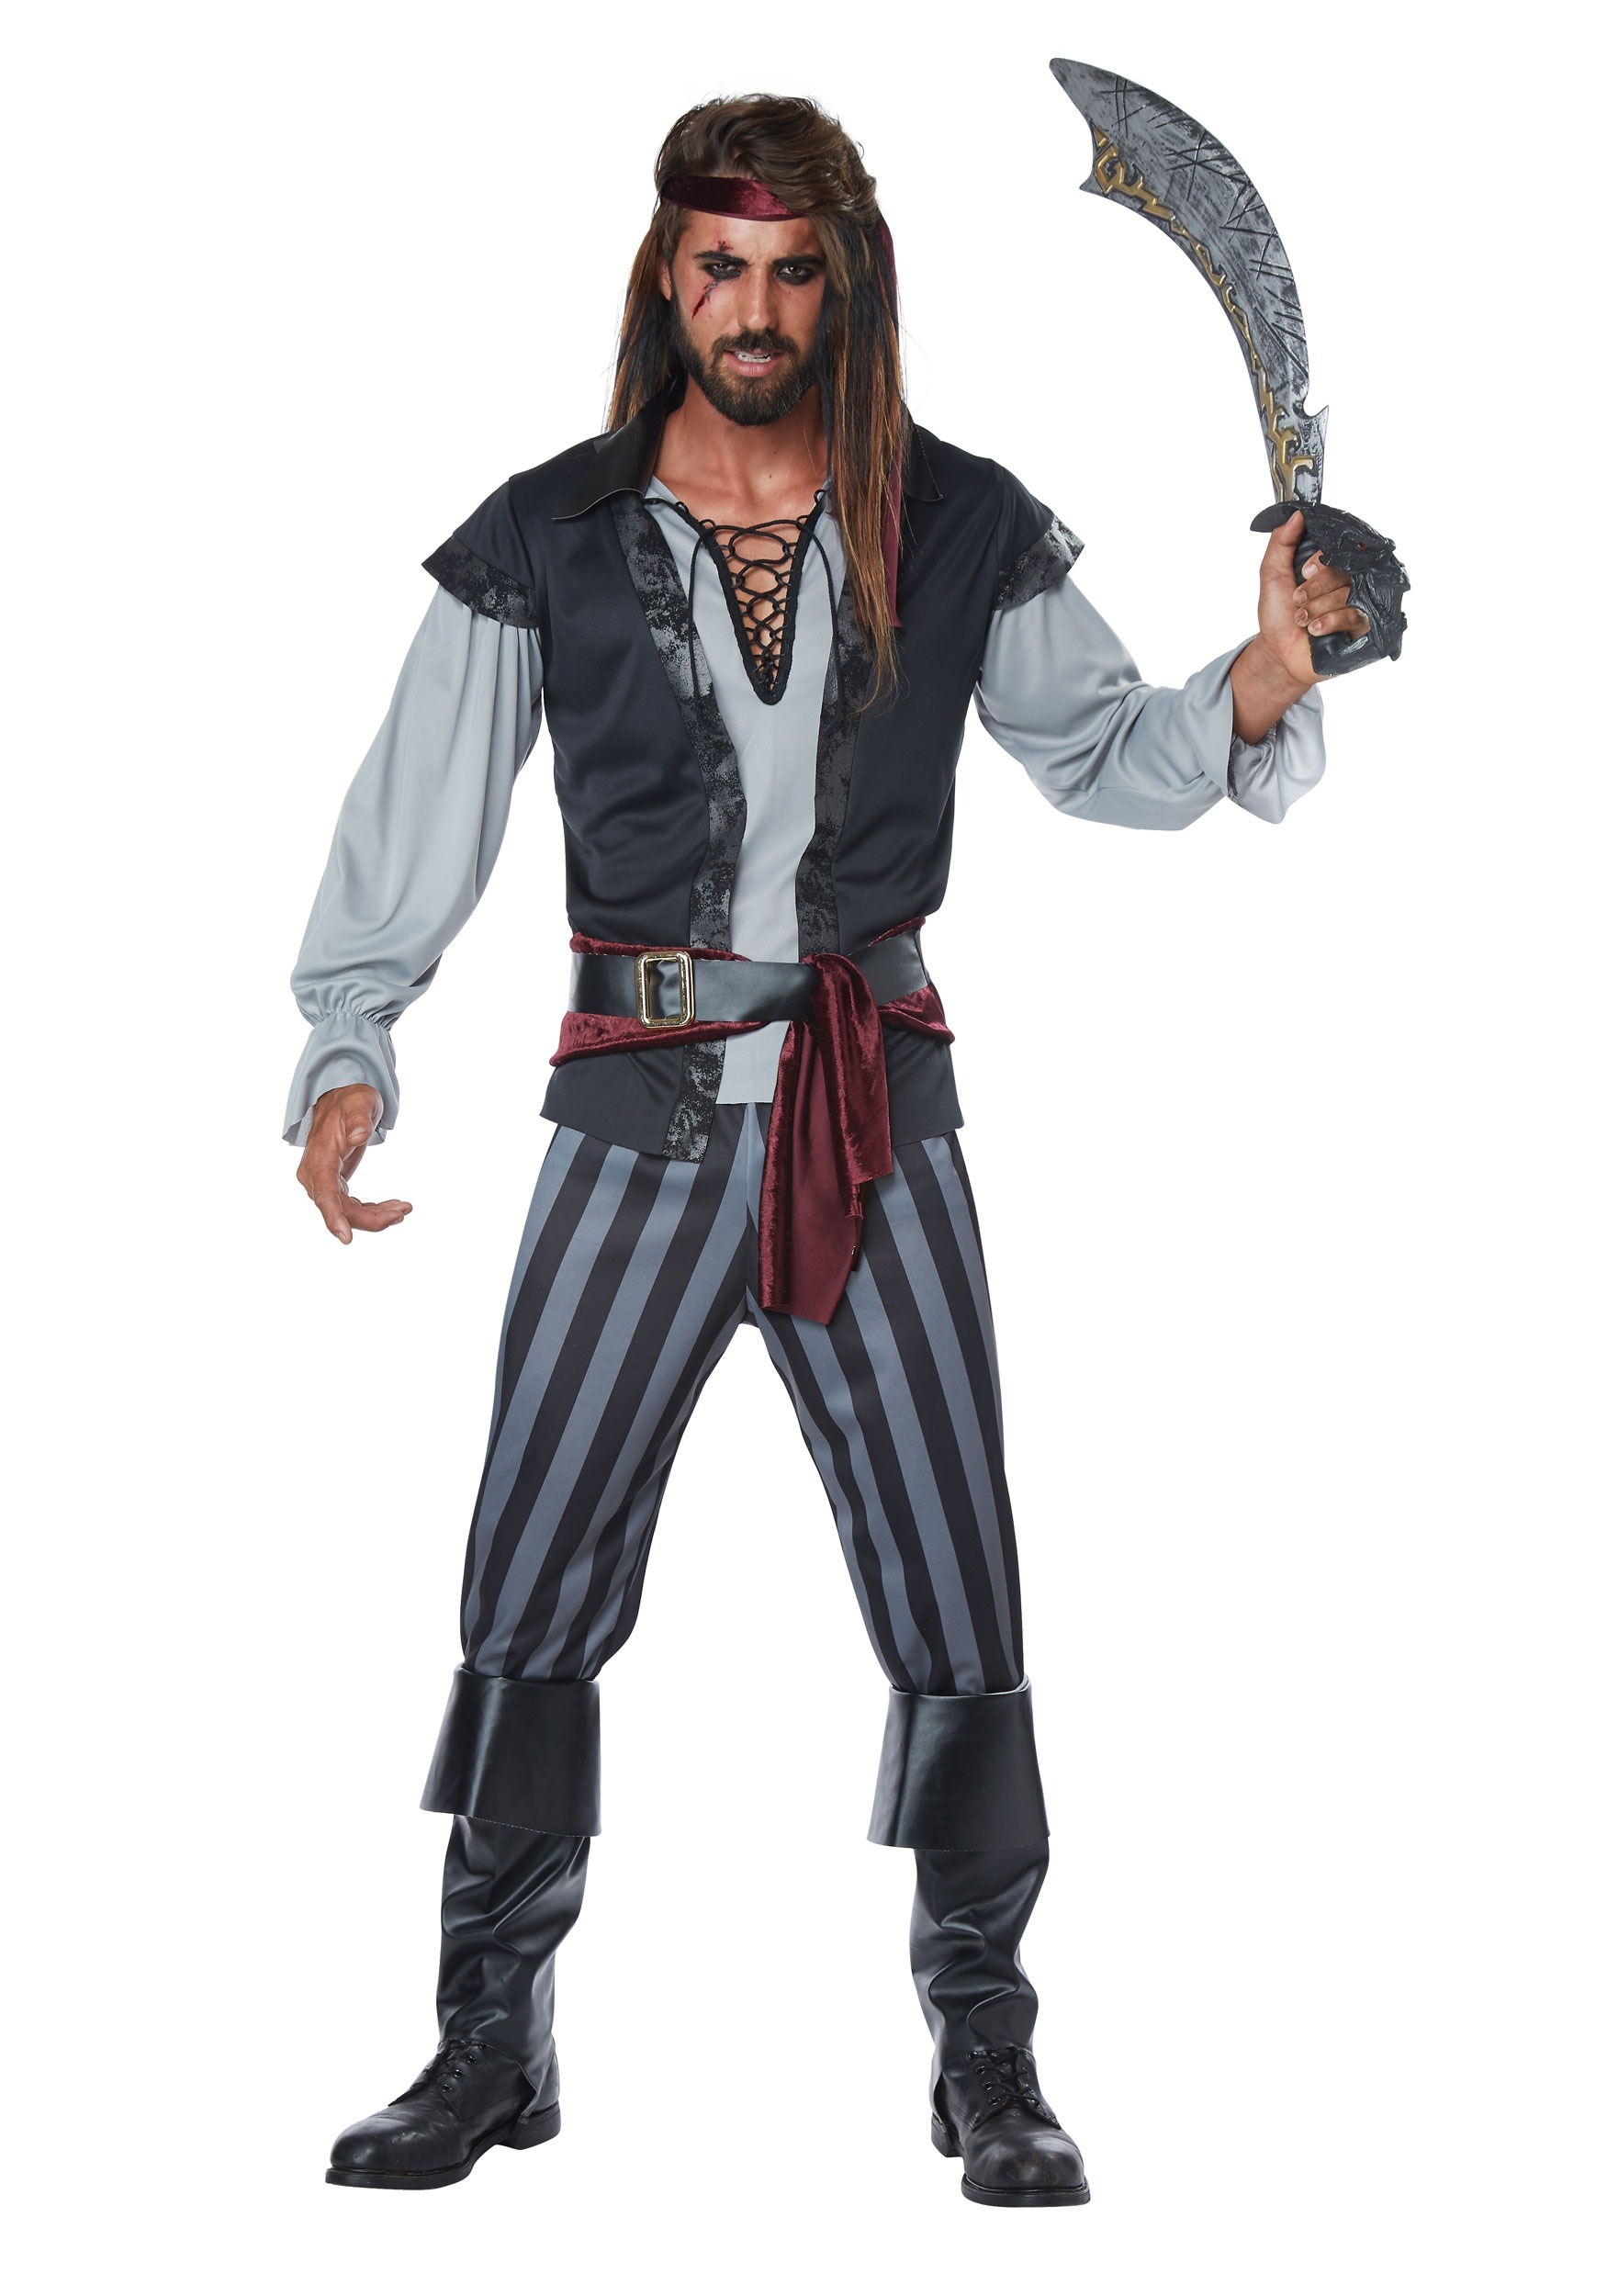 Scallywag Pirate Costume for Men